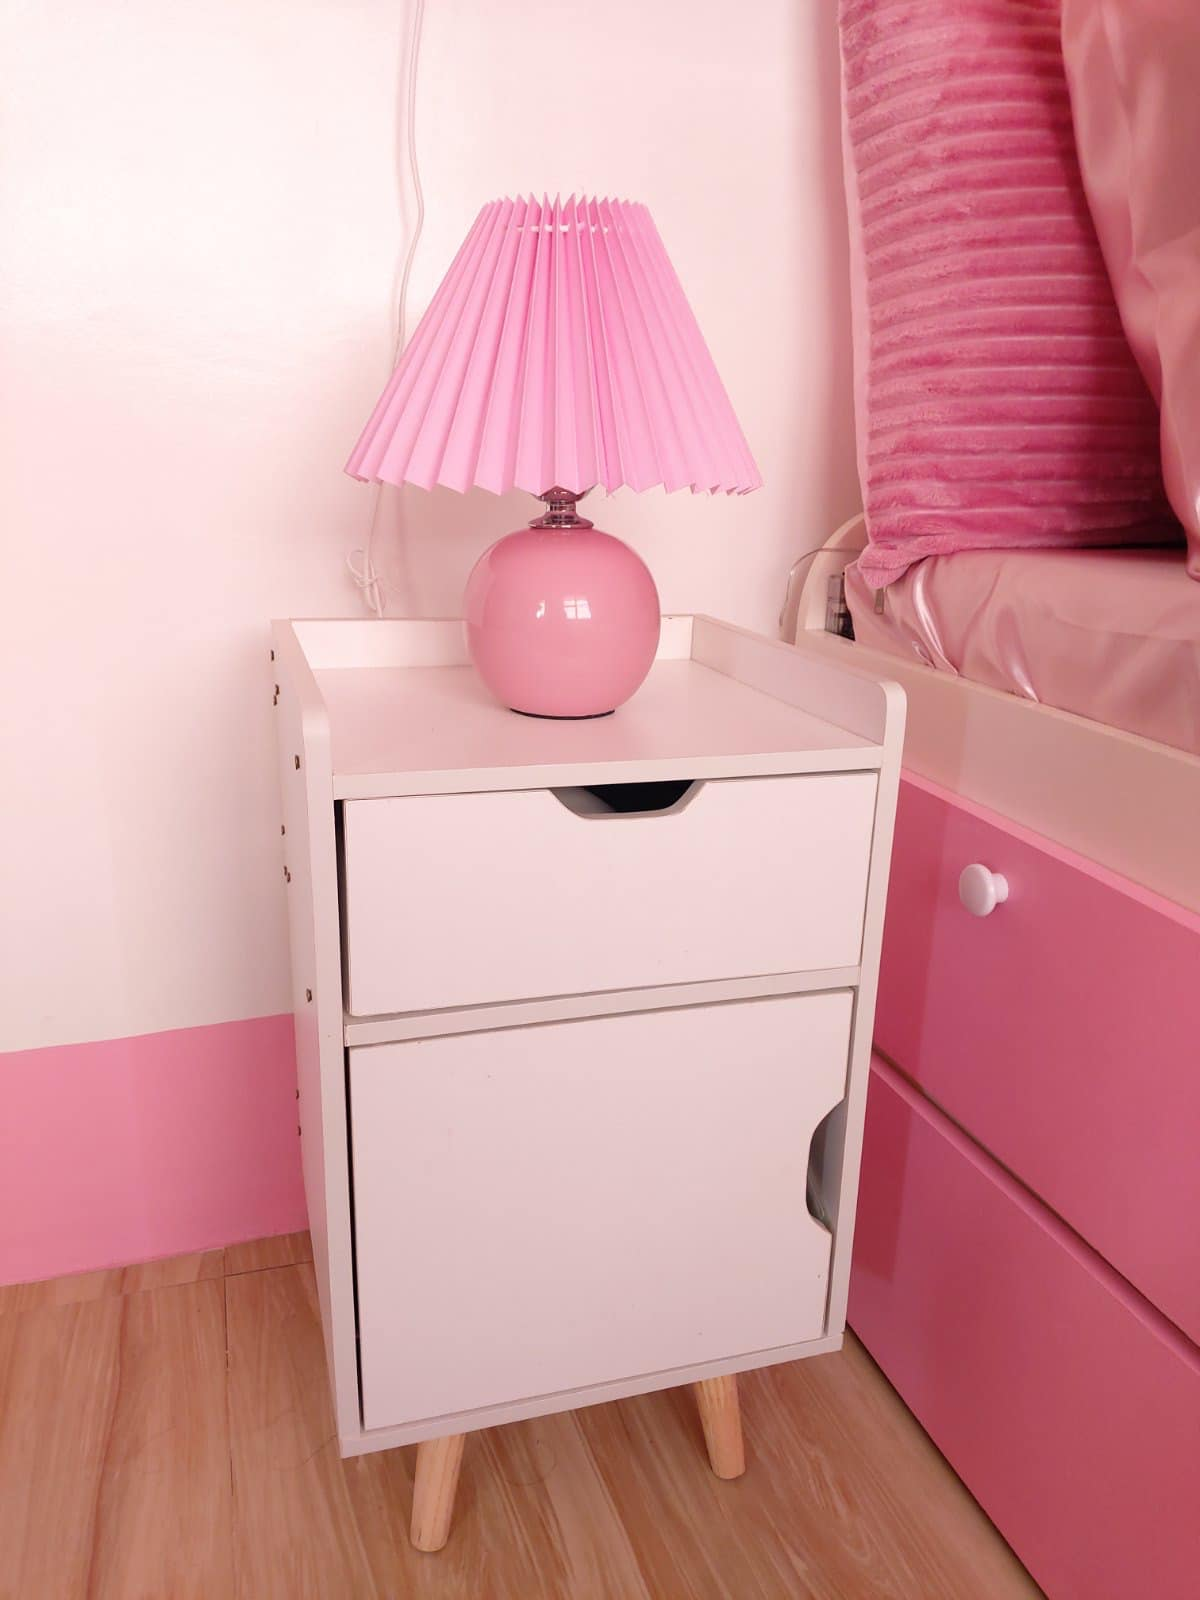 all-pink bedroom - bedside table and lamp